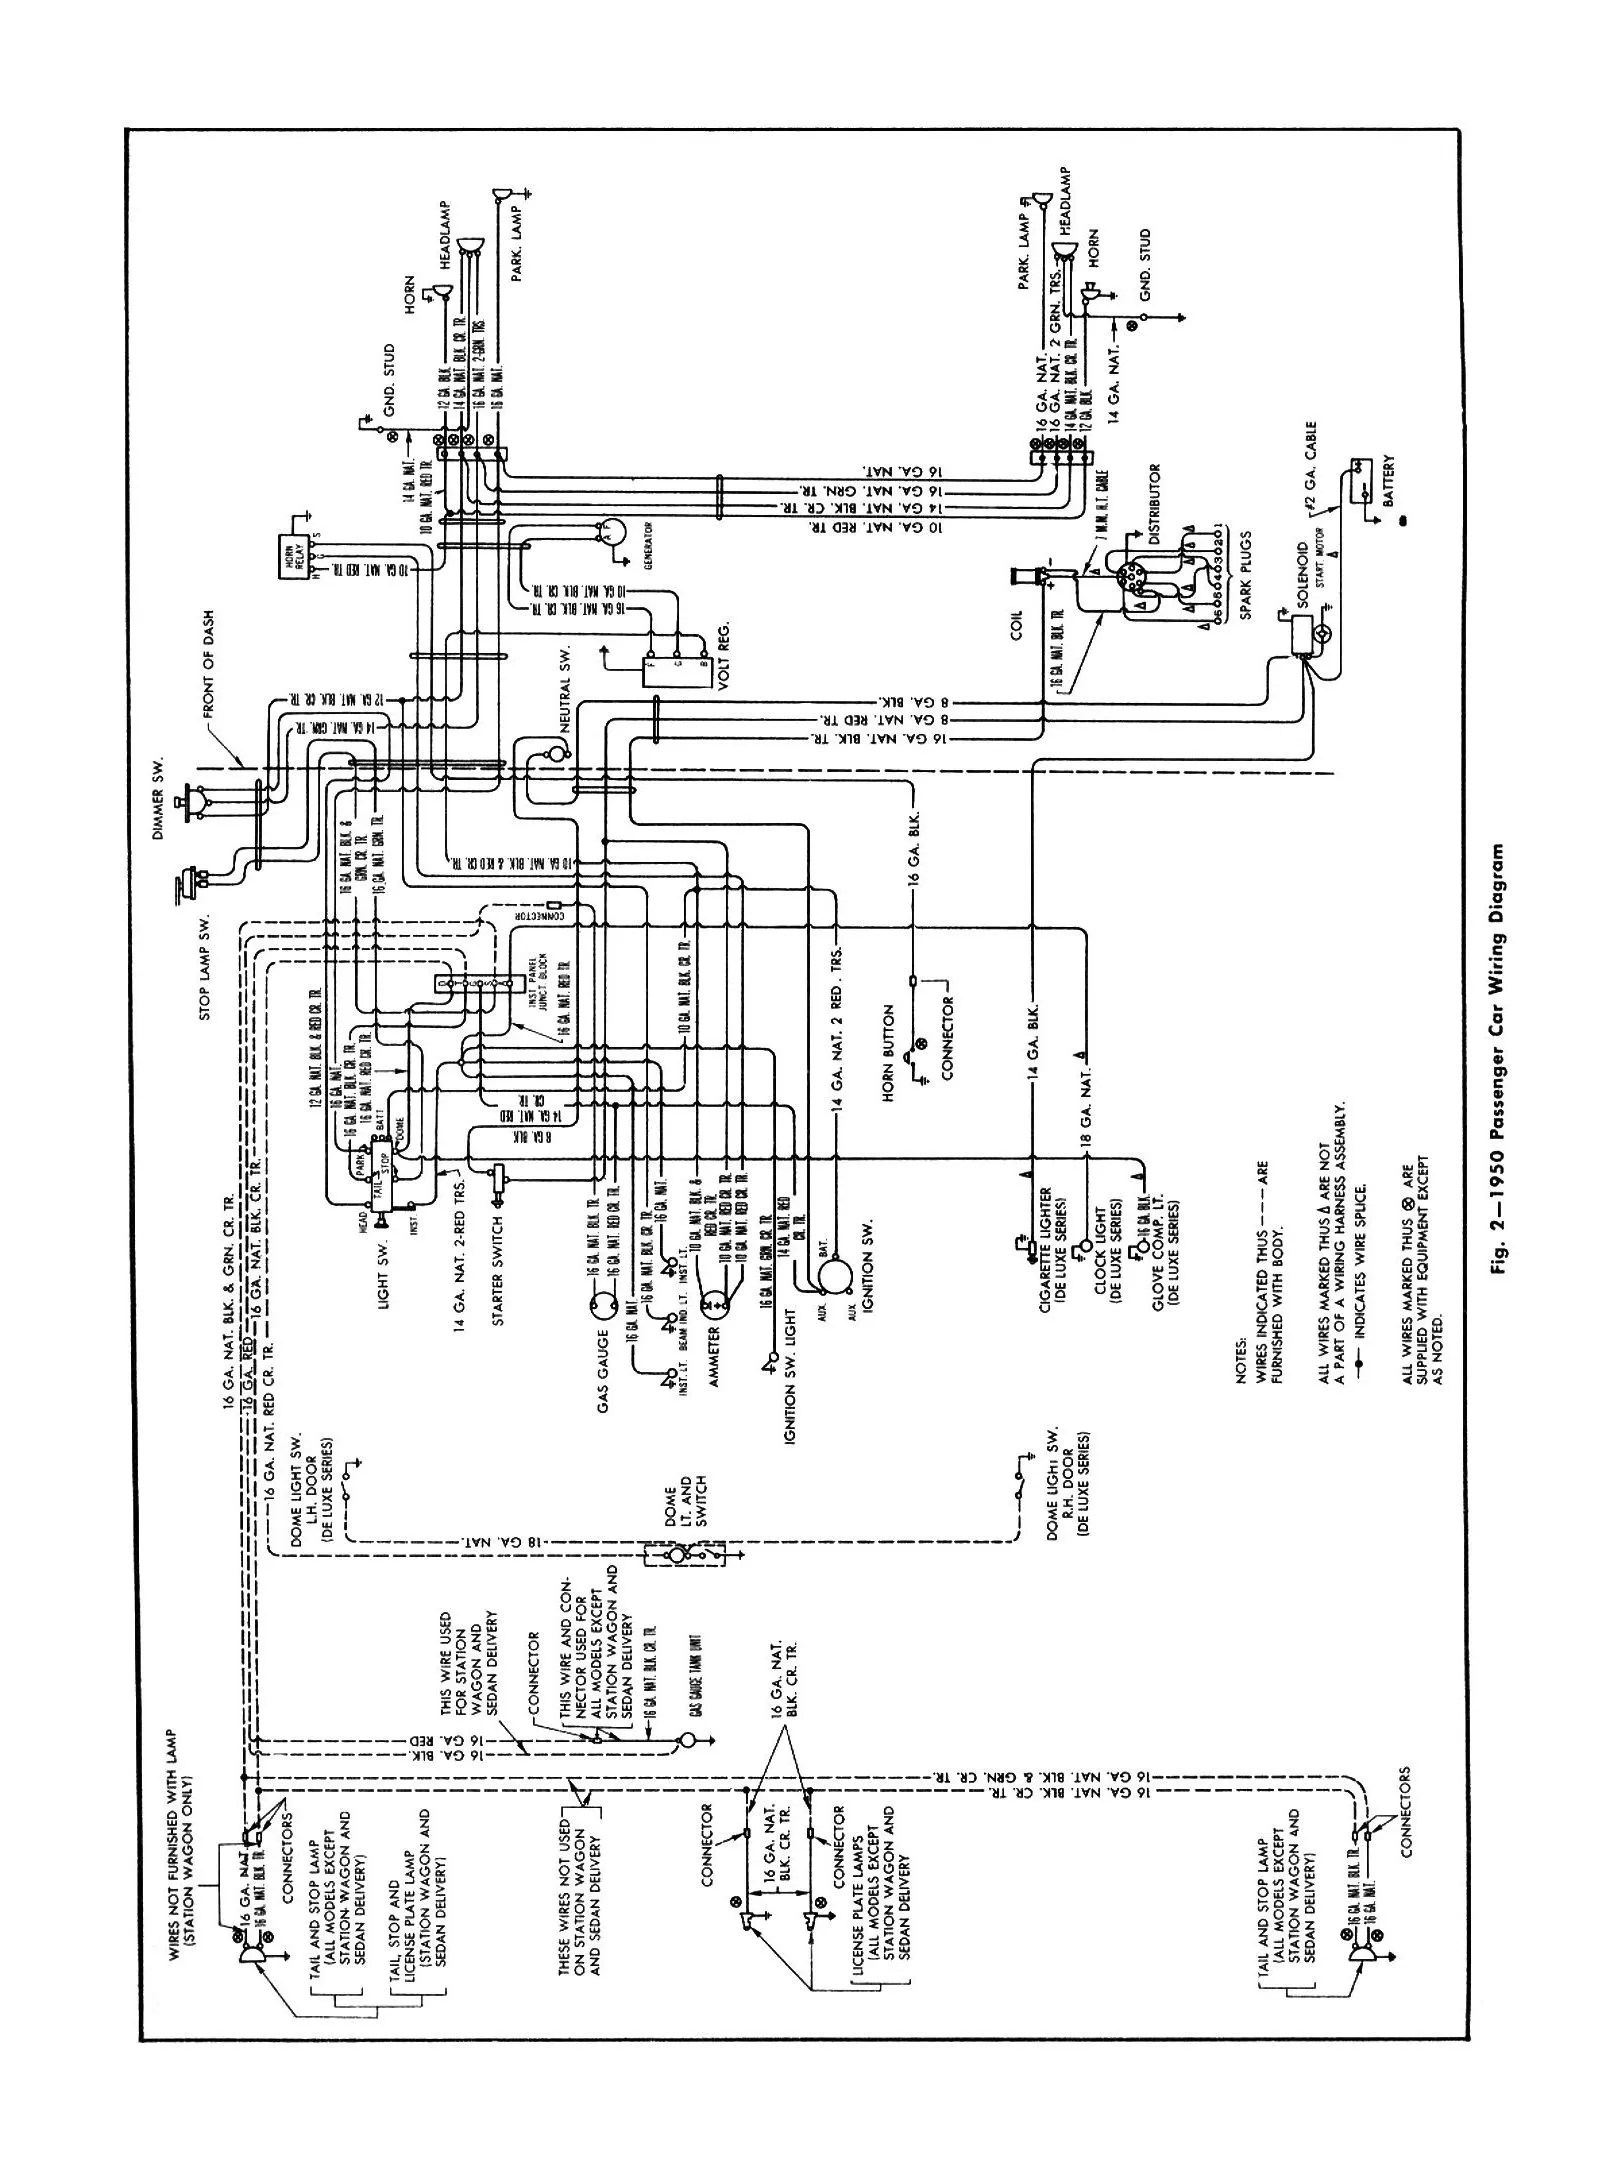 hight resolution of chevy wiring diagrams 1957 chevy wiring diagram 1950 car general wiring